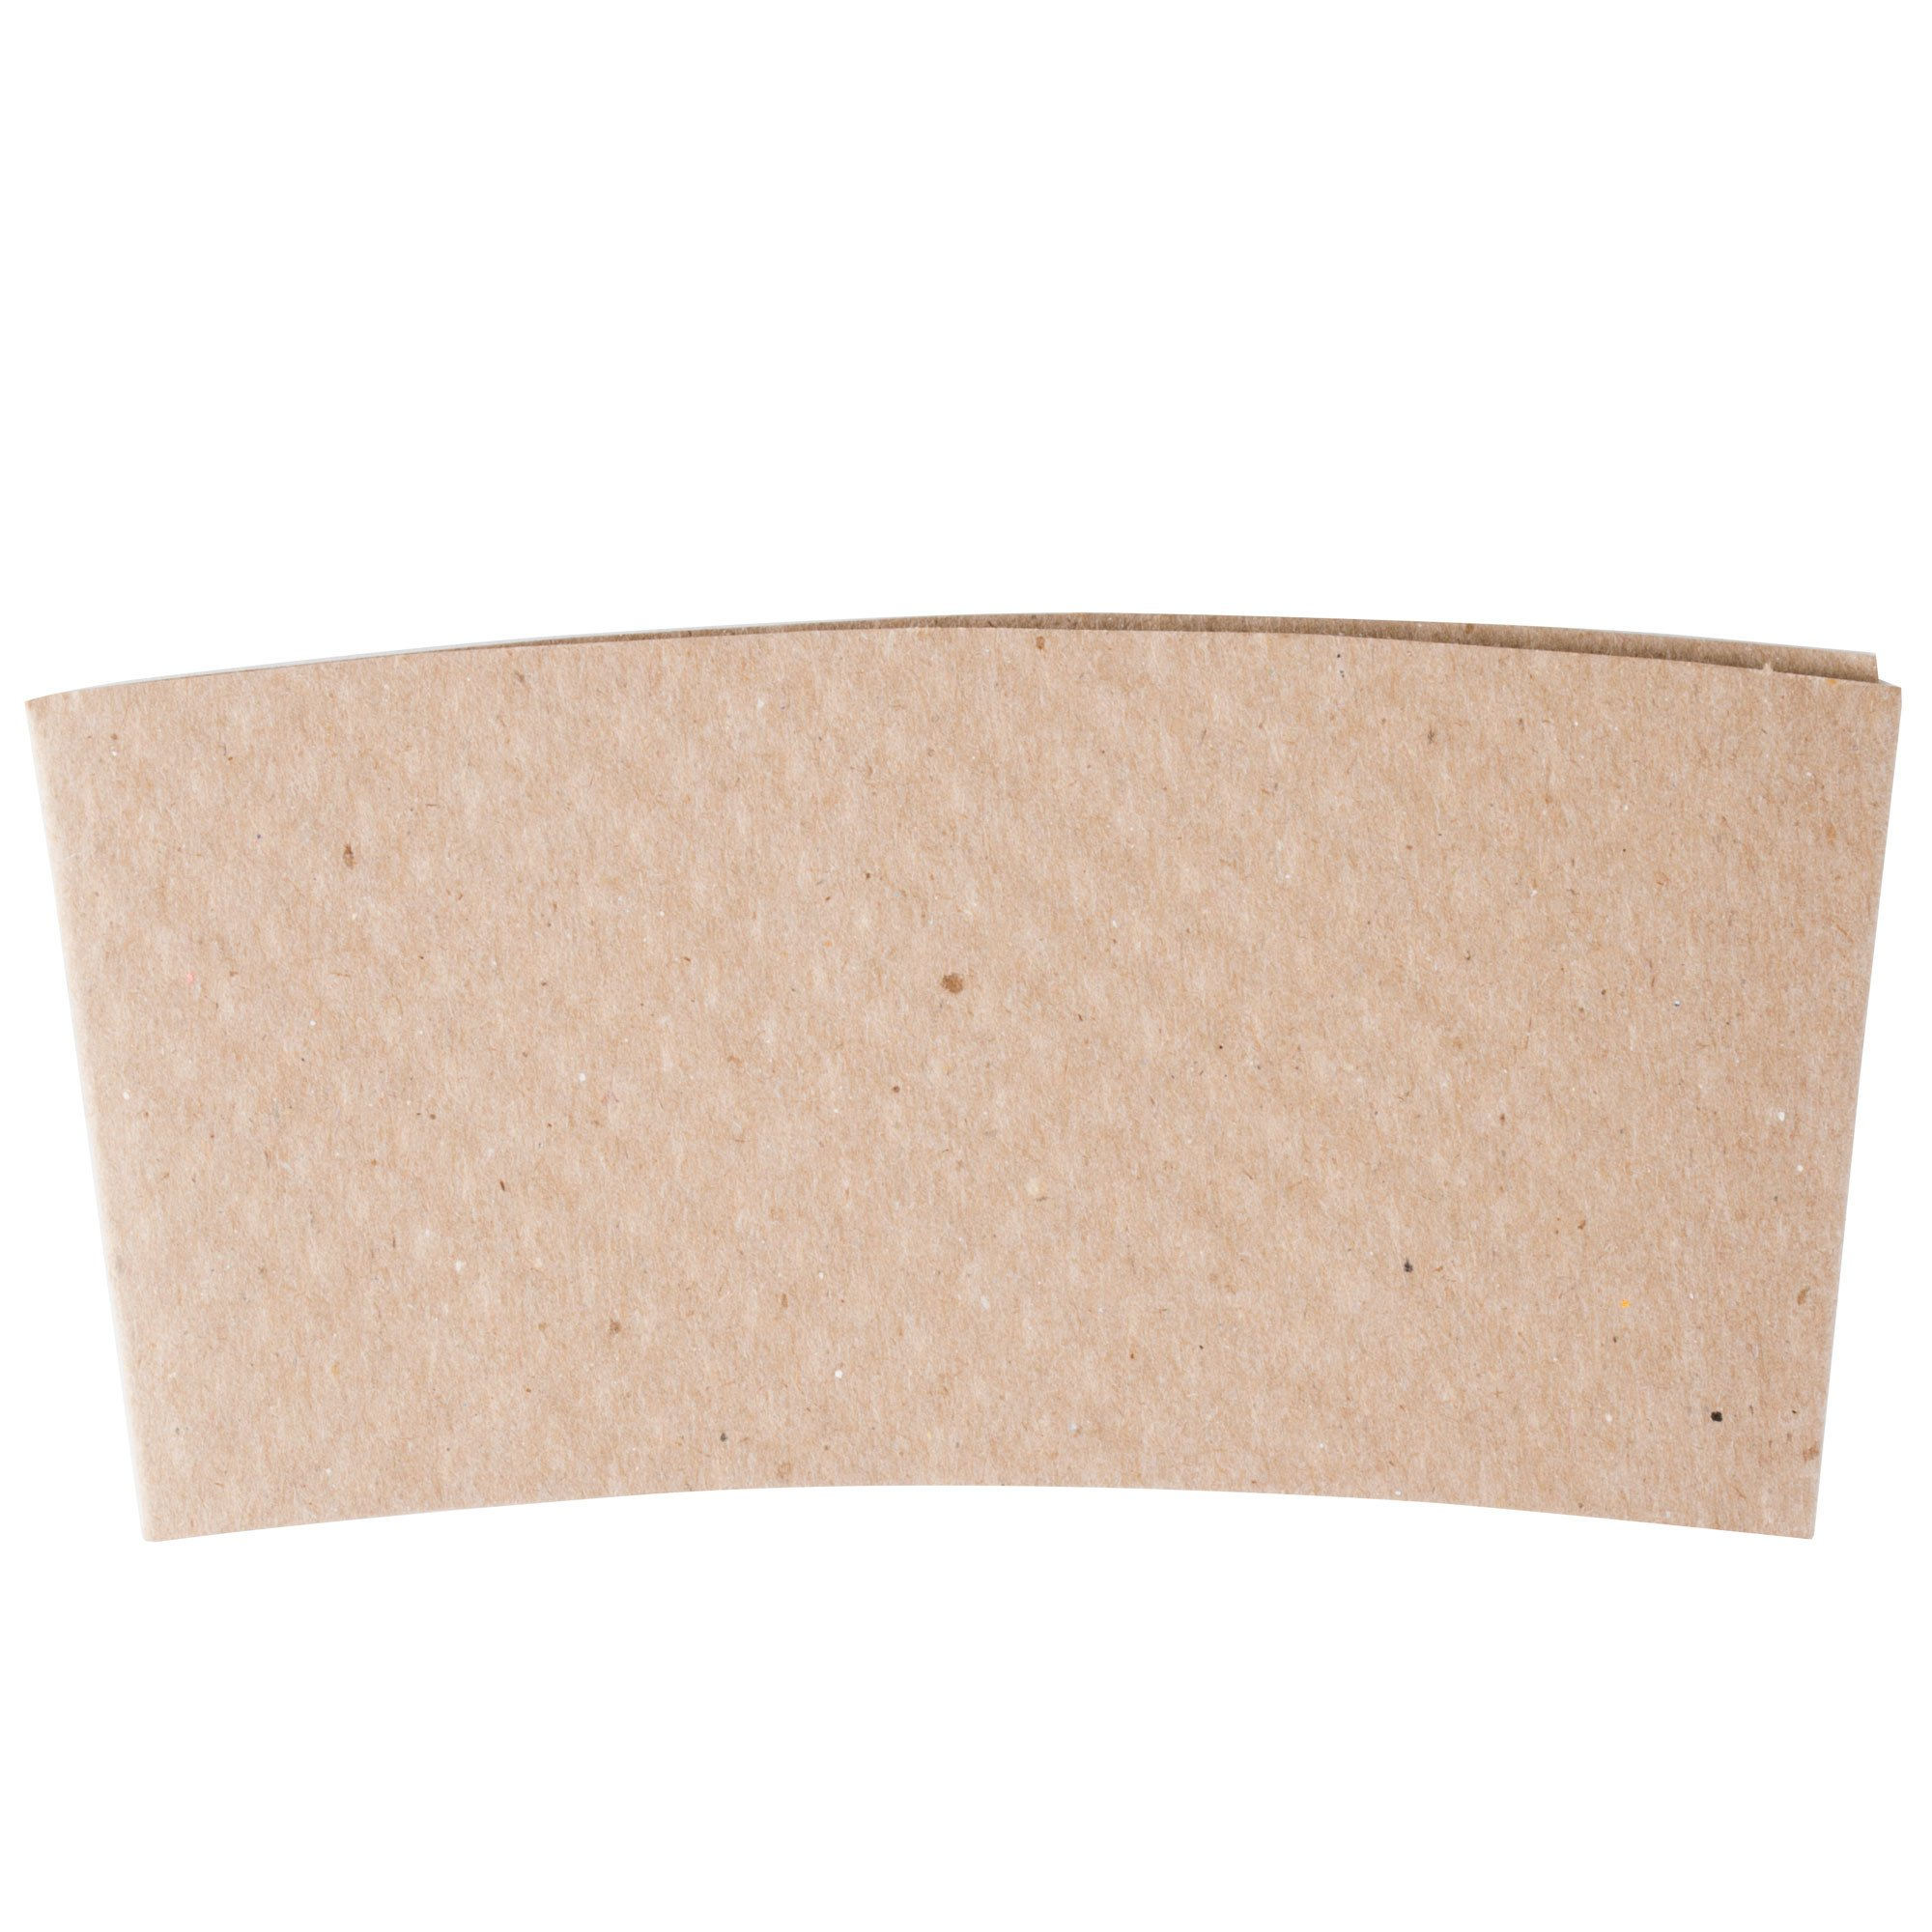 Natural Kraft Customizable Embossed Coffee Cup Sleeve 12-24 oz.- 1500/Case